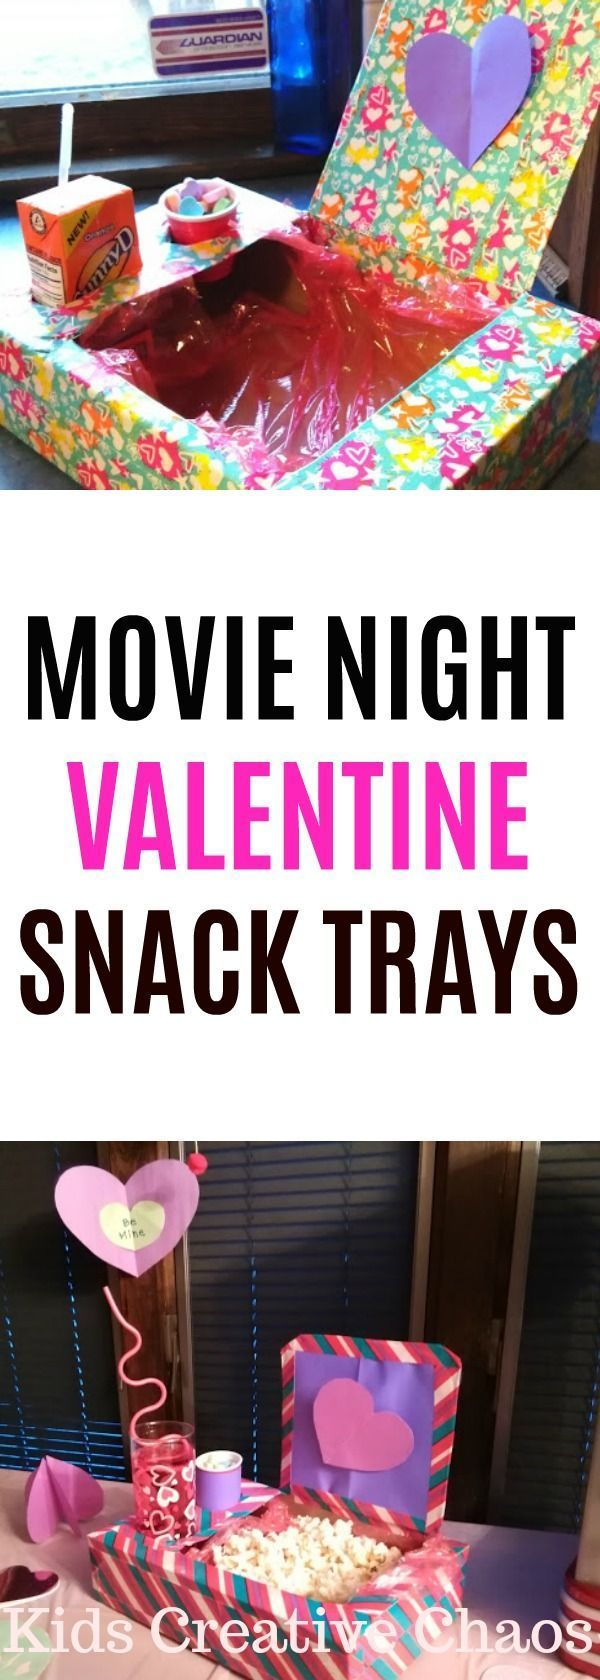 Valentine's Day Party Ideas for Tweens Tutorial #sleepoverparty Movie night Vale…